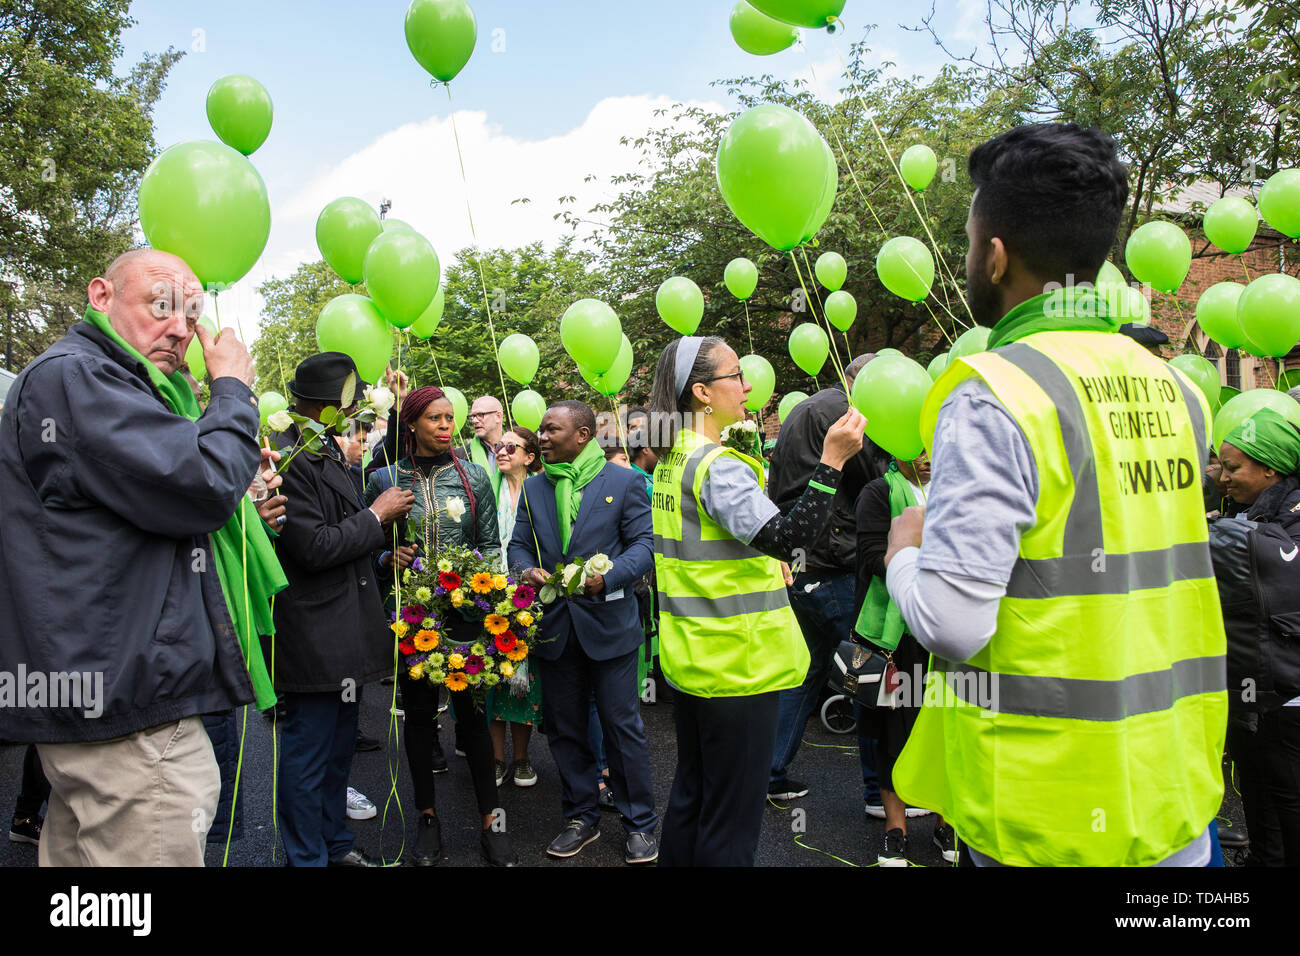 London, UK. 14 June, 2019. Family members prepare to release green balloons following a memorial service at St Helen's Church to mark the second anniversary of the Grenfell Tower fire on 14th June 2017 in which at least 72 people died and over 70 were injured. Credit: Mark Kerrison/Alamy Live News - Stock Image